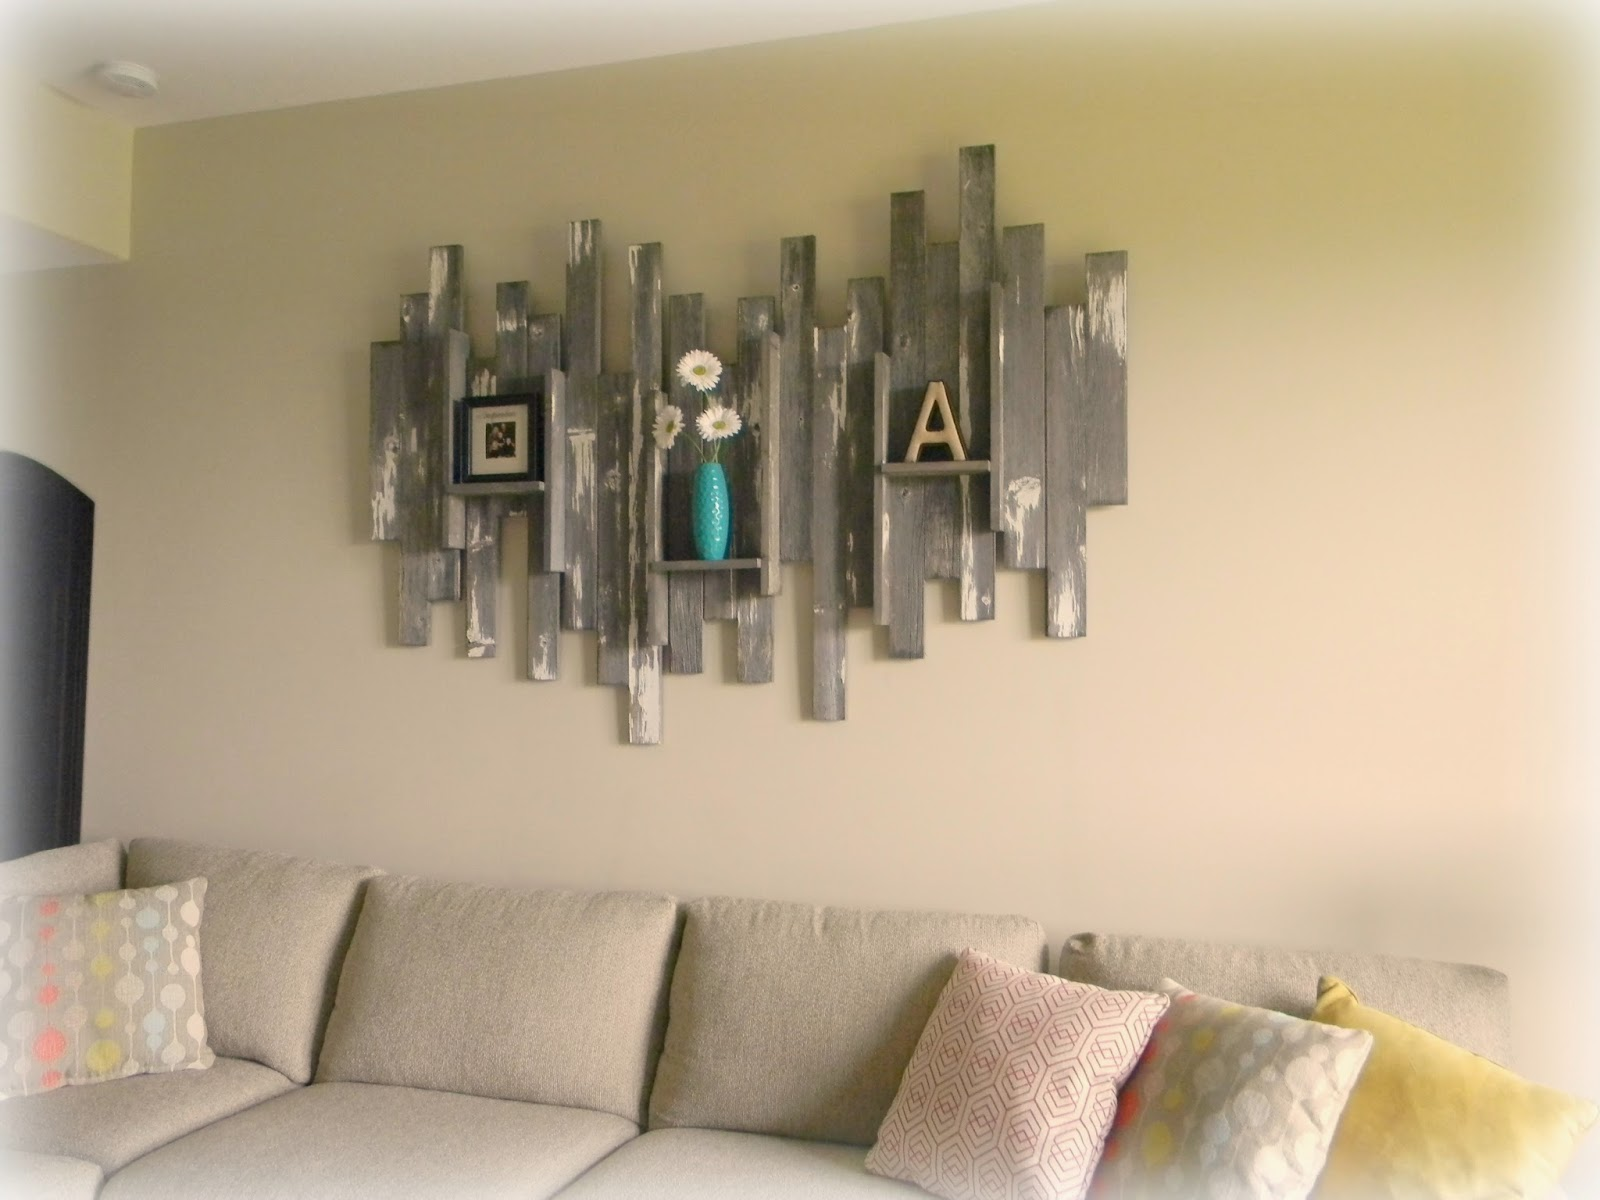 Forever Decorating!: Barn Wood Wall Art & Basement